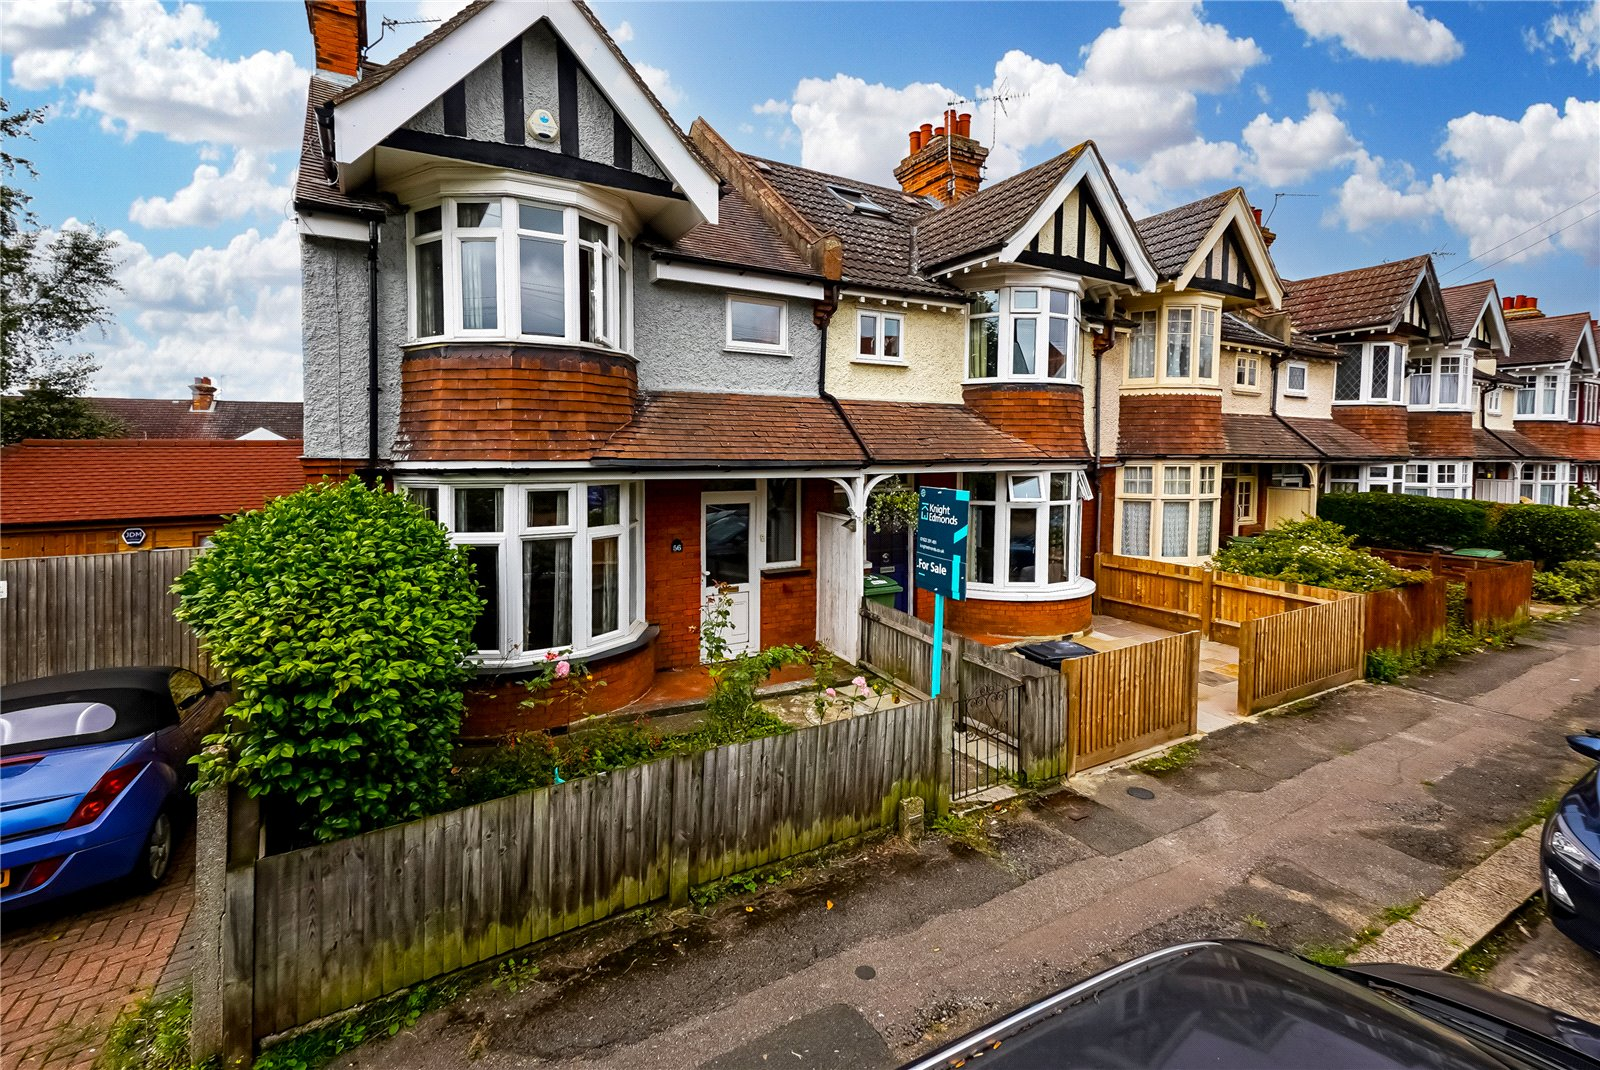 3 bed house for sale in Curzon Road, Maidstone  - Property Image 1